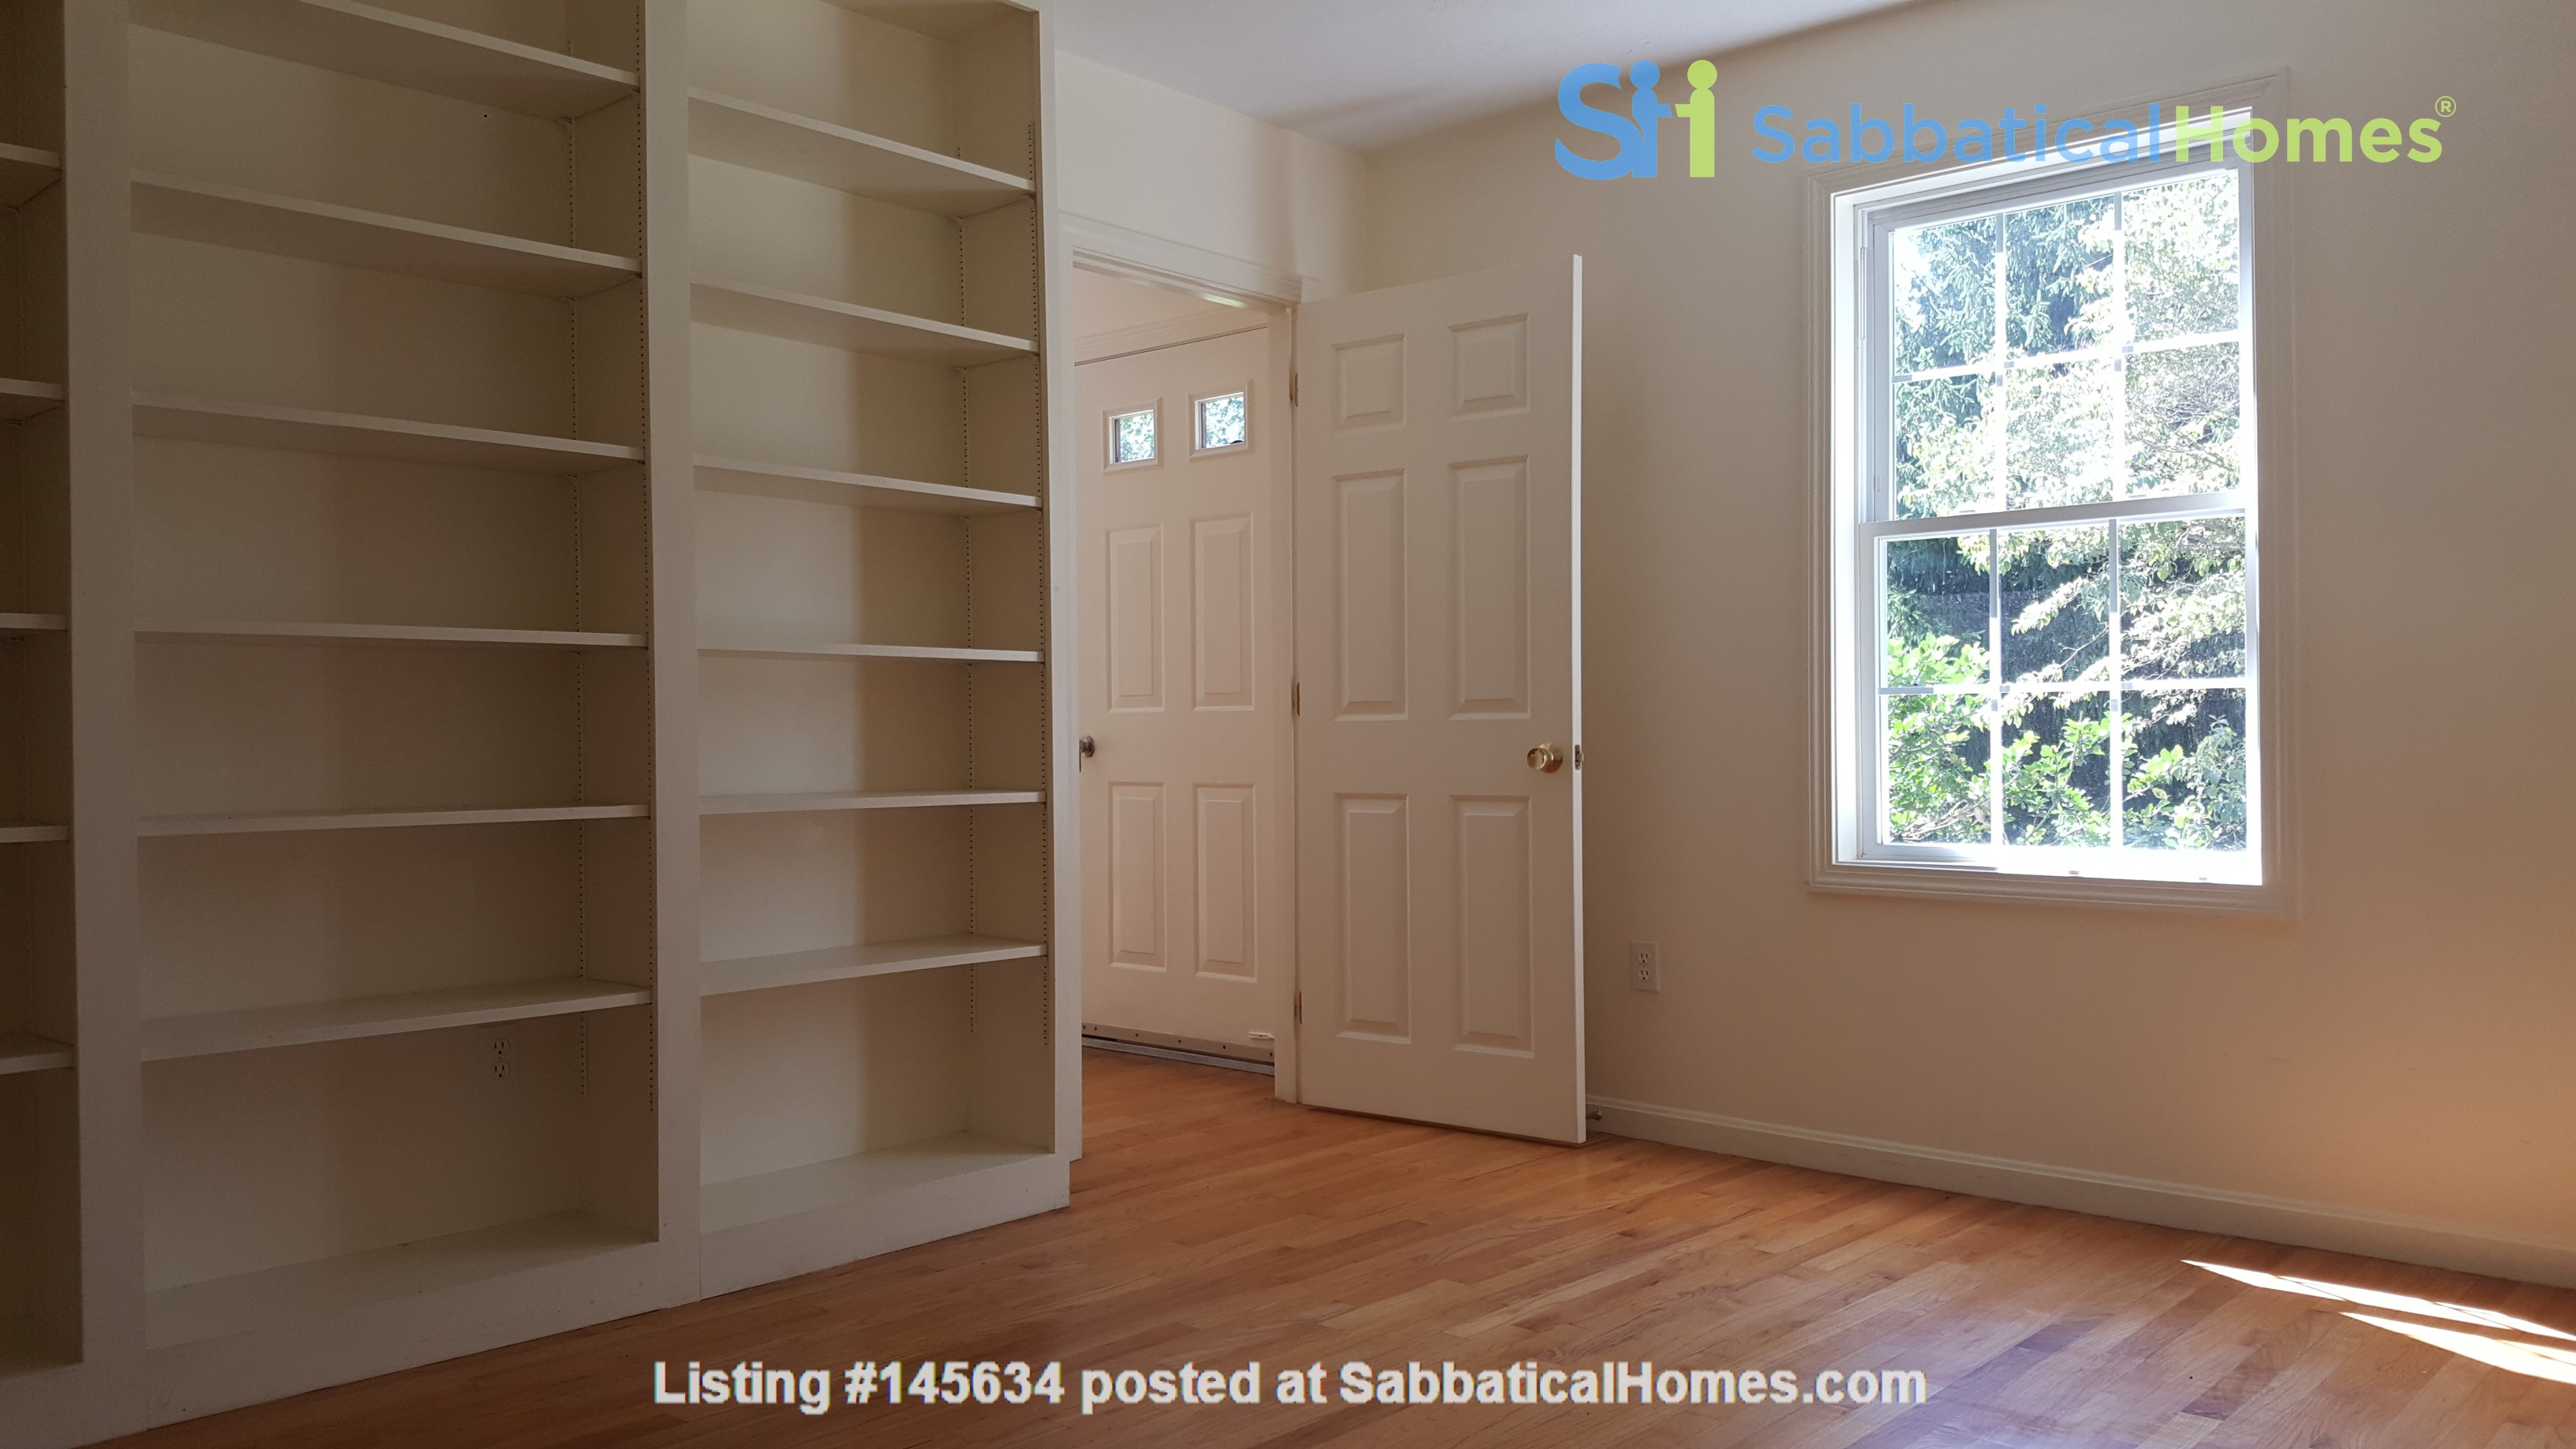 2 bedroom country house / 25 miles North of Boston and Cambridge Home Rental in Andover, Massachusetts, United States 6